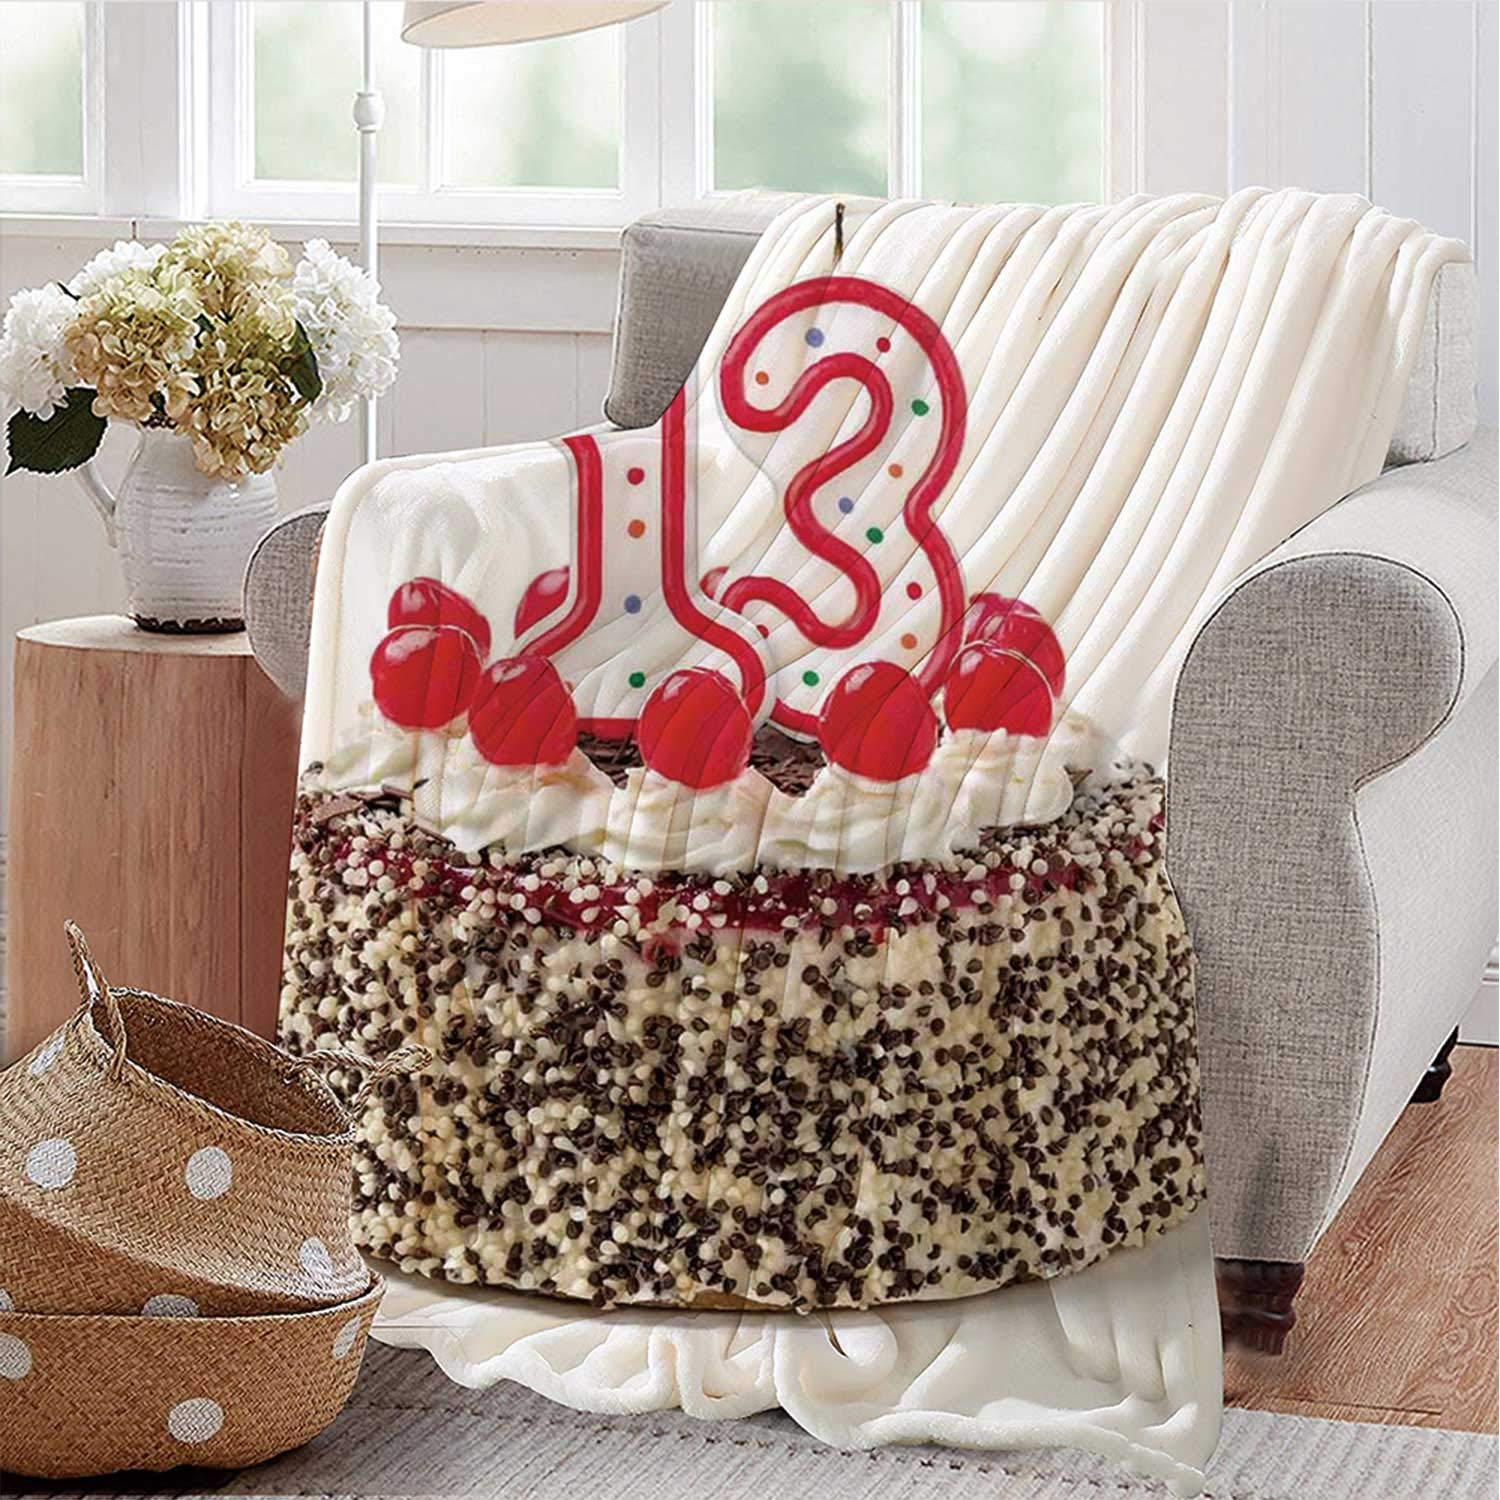 YOLIYANA 13th Birthday Decorations Personalized Flannel Blanket,Cake with Numeral Candles and Cherries Yummy Desert for Party for Spring,49'' L x 70'' W